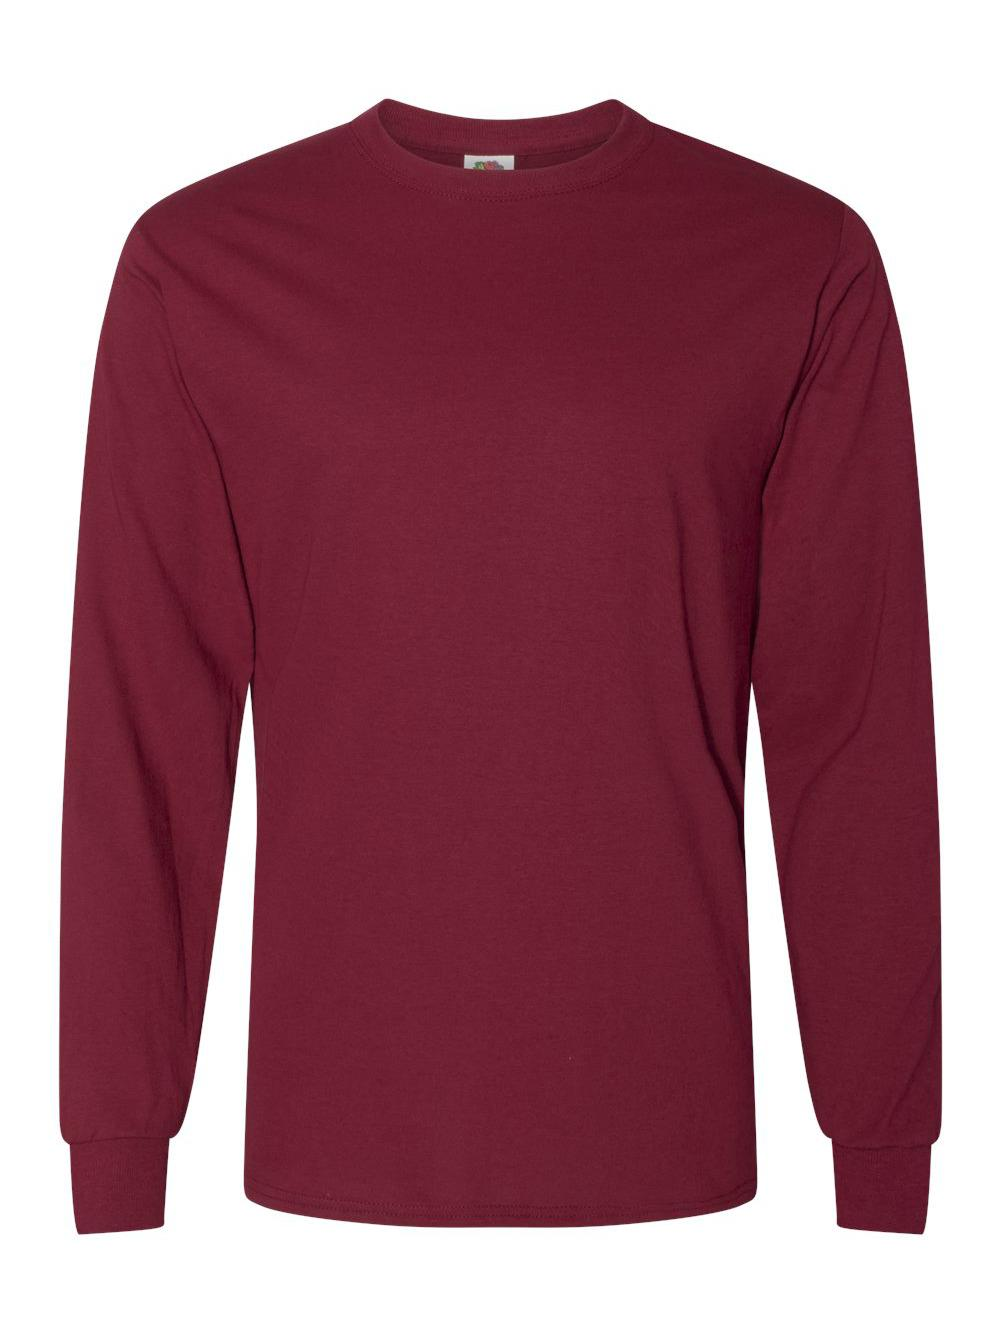 Fruit-of-the-Loom-HD-Cotton-Long-Sleeve-T-Shirt-4930R thumbnail 18